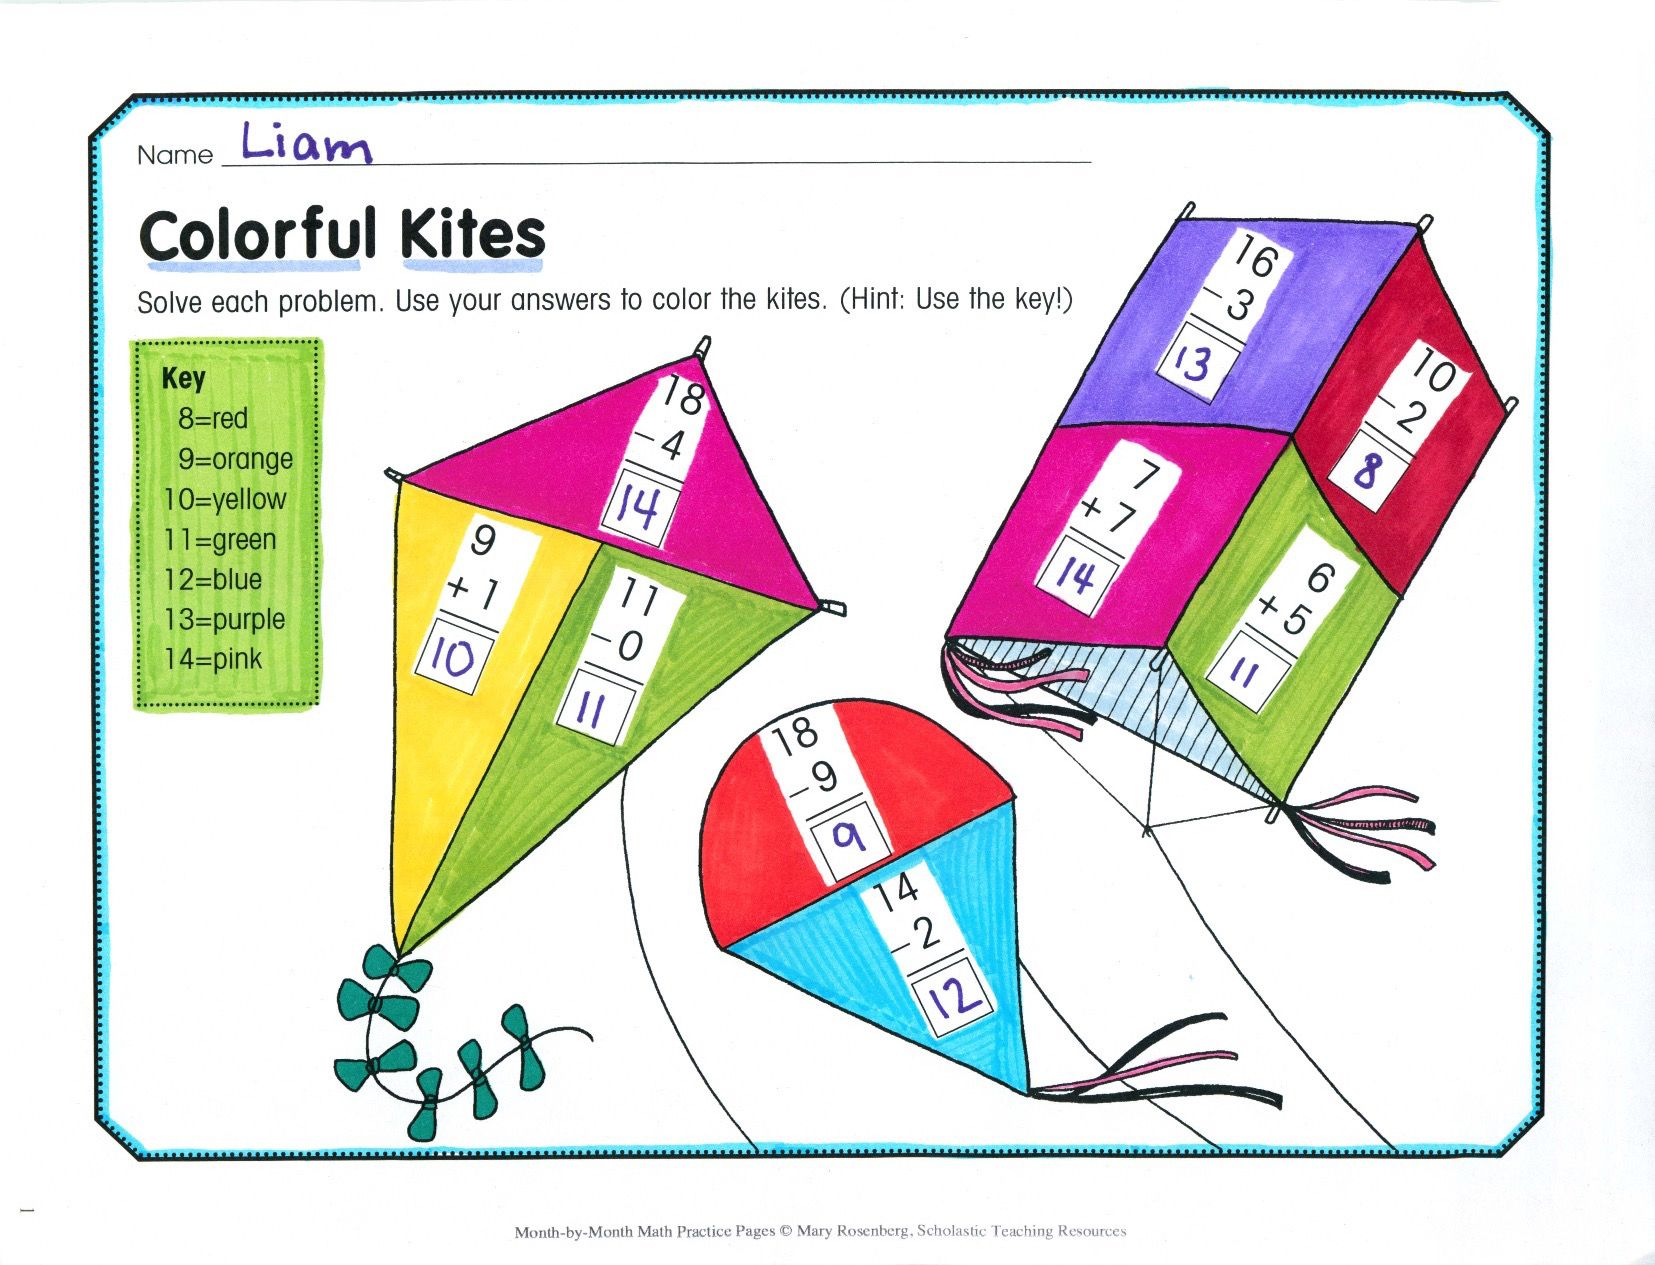 Children Solve Vertical Addition And Subtraction Problems Then Follow A Key To Color Each Kite This Fun And Interactive Math P Math Practices March Math Math Vertical adding and subtracting